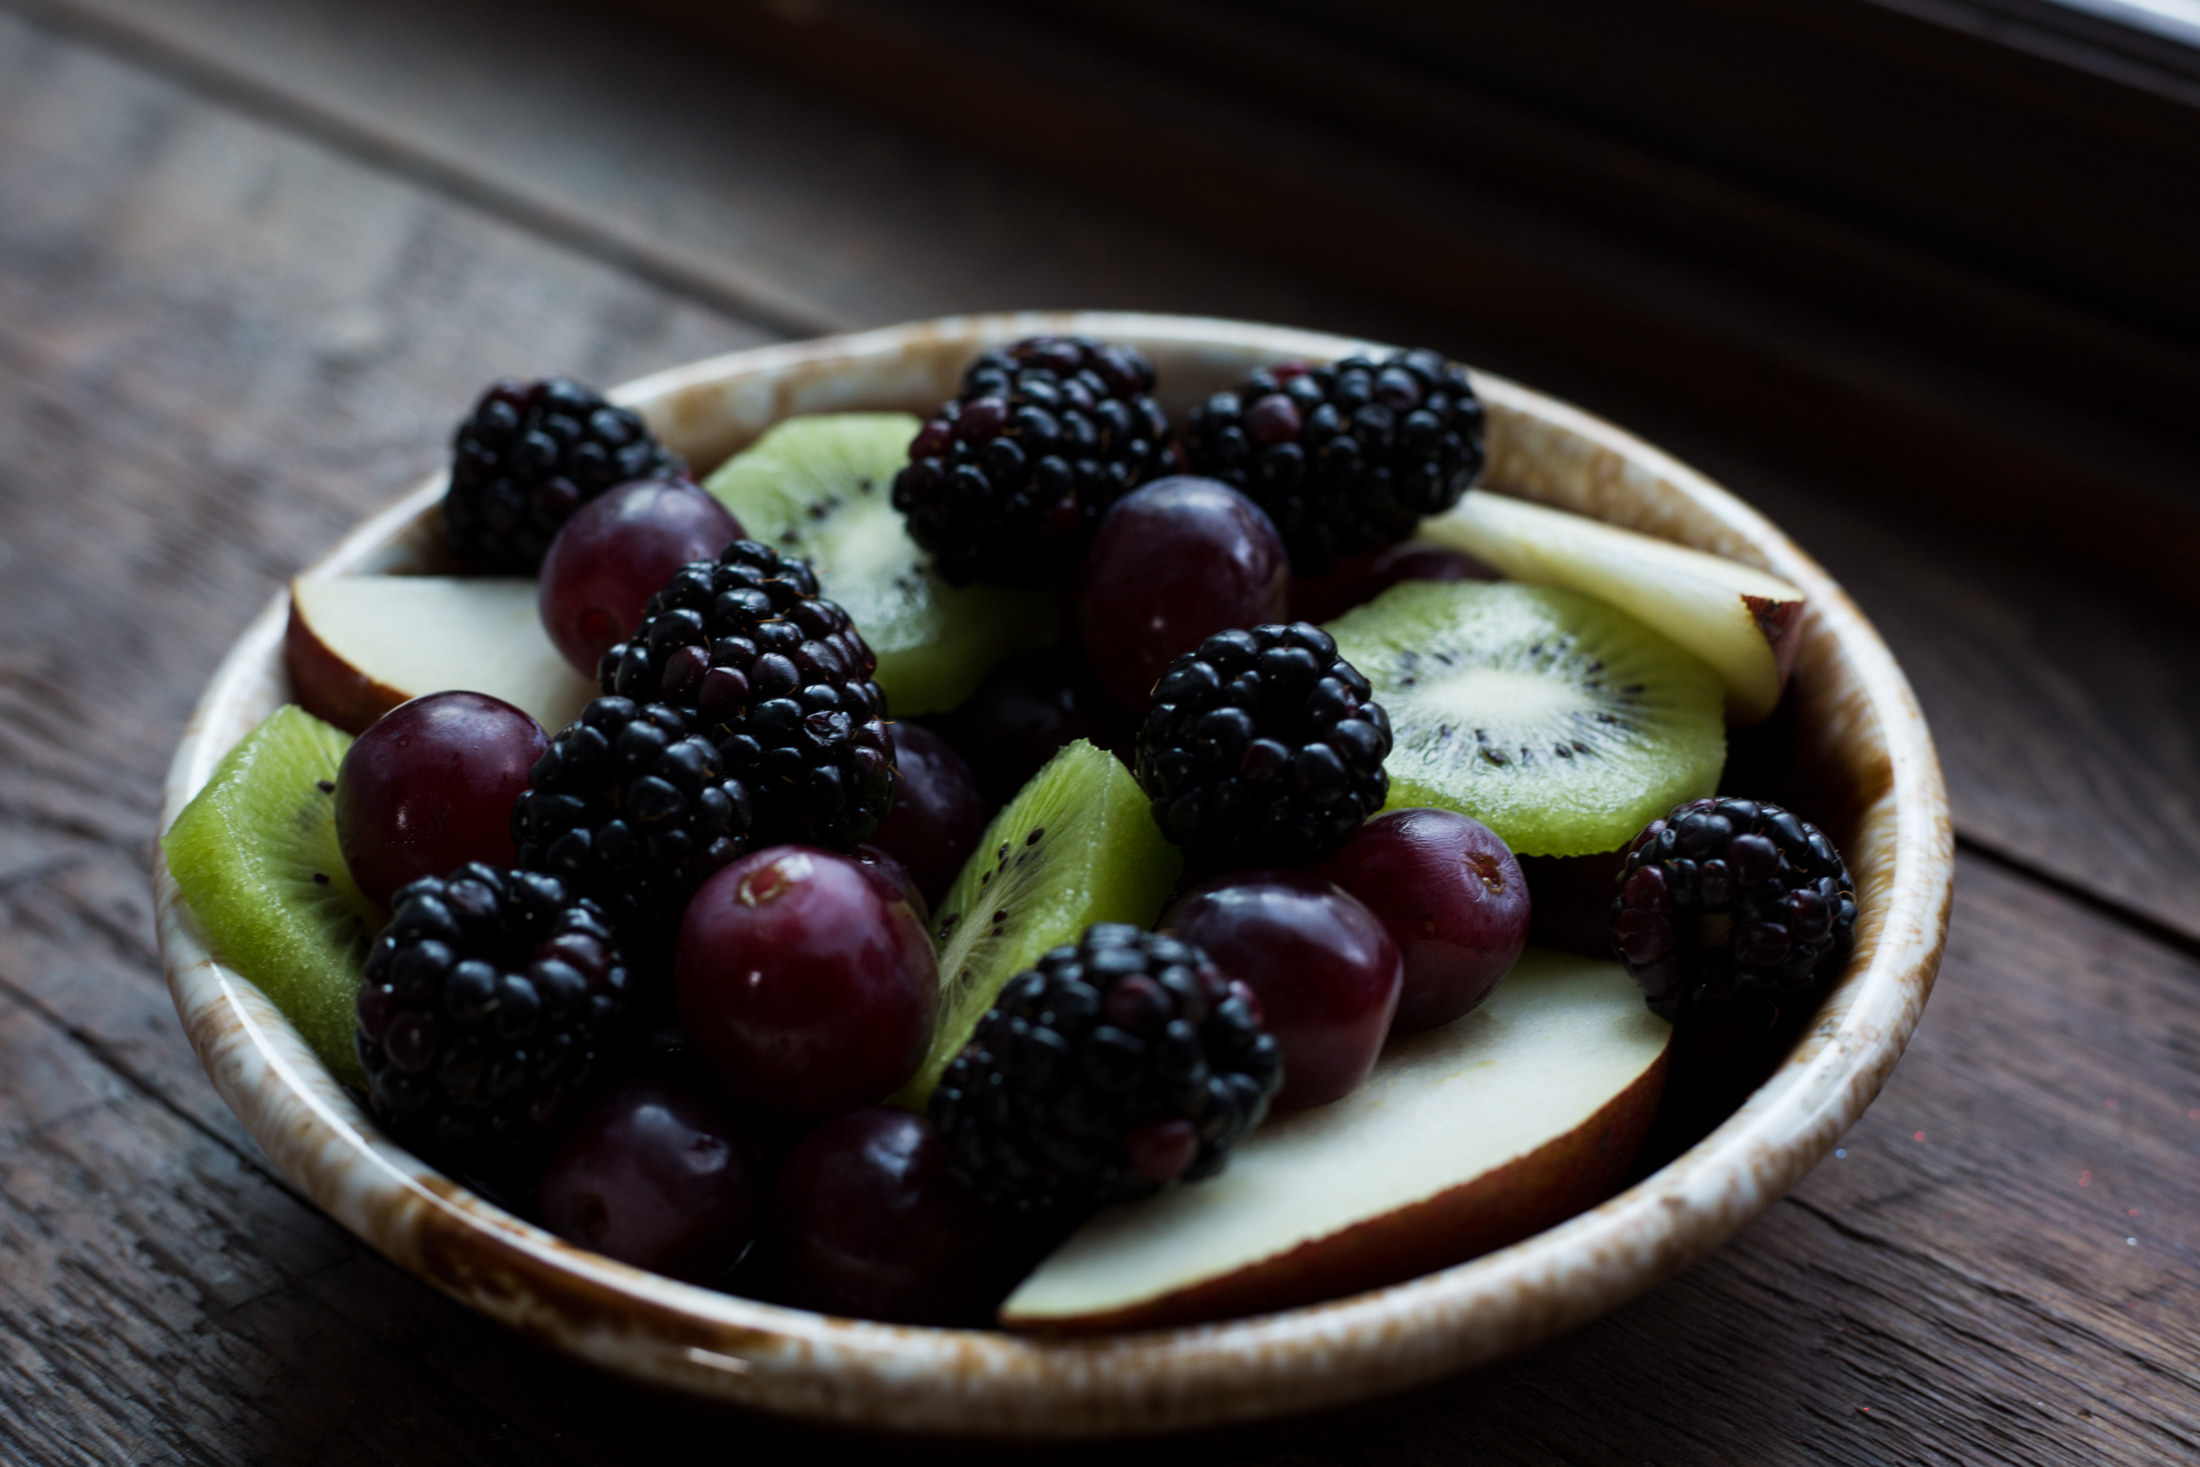 West Ashe Food Photography - fruit Bowl